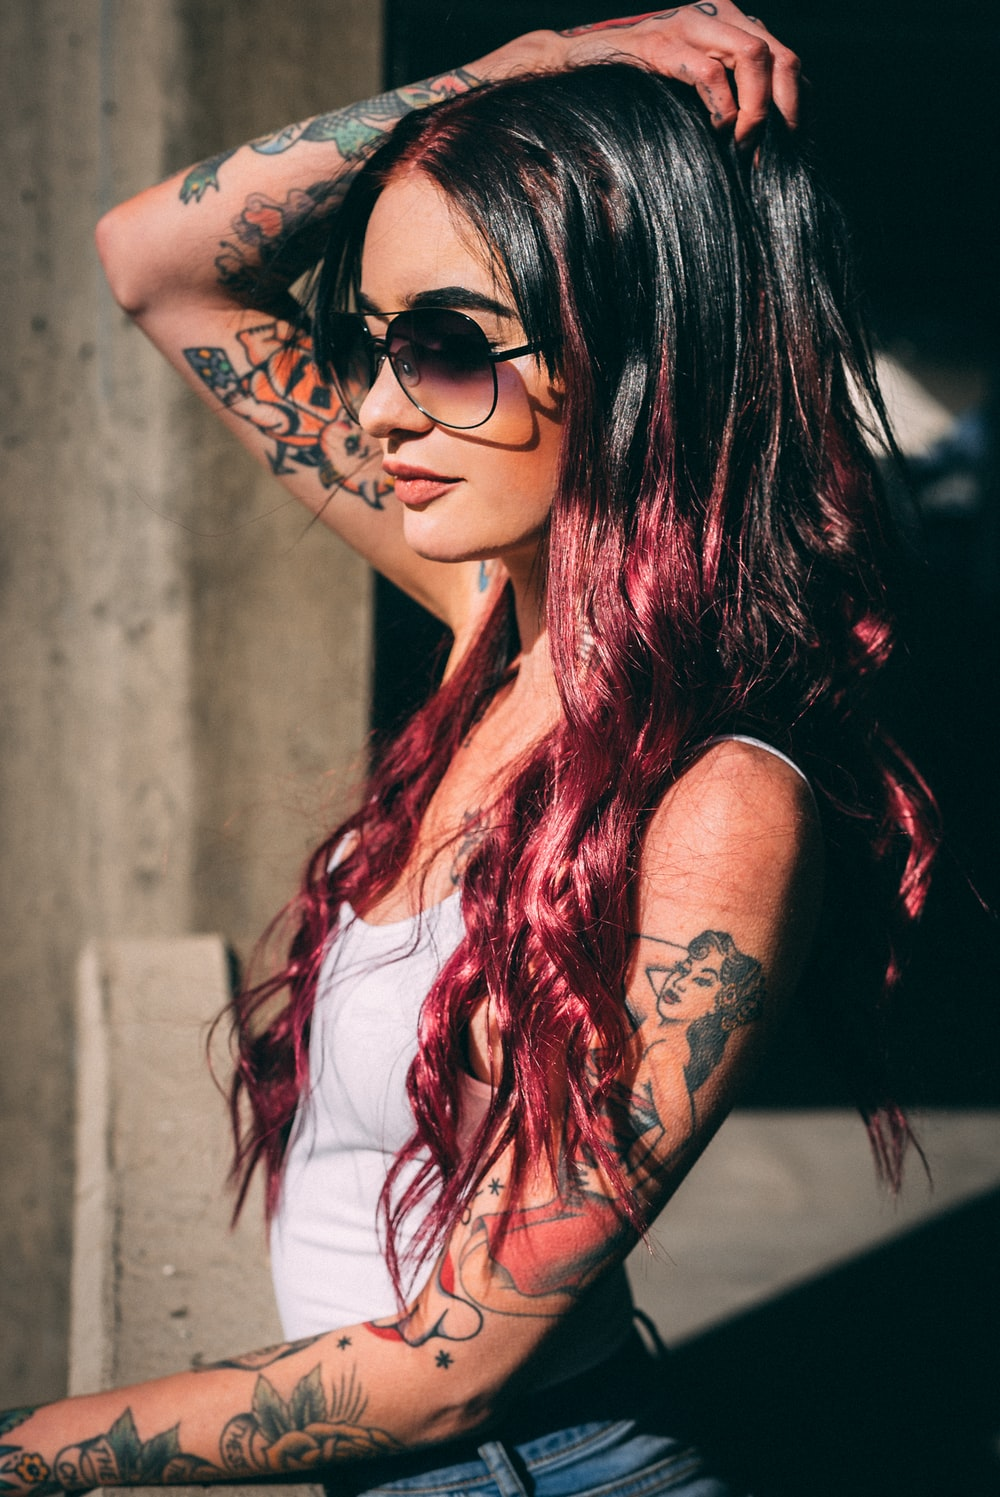 Dirty Tattoos For Women: Are Tattoos Important To Men?